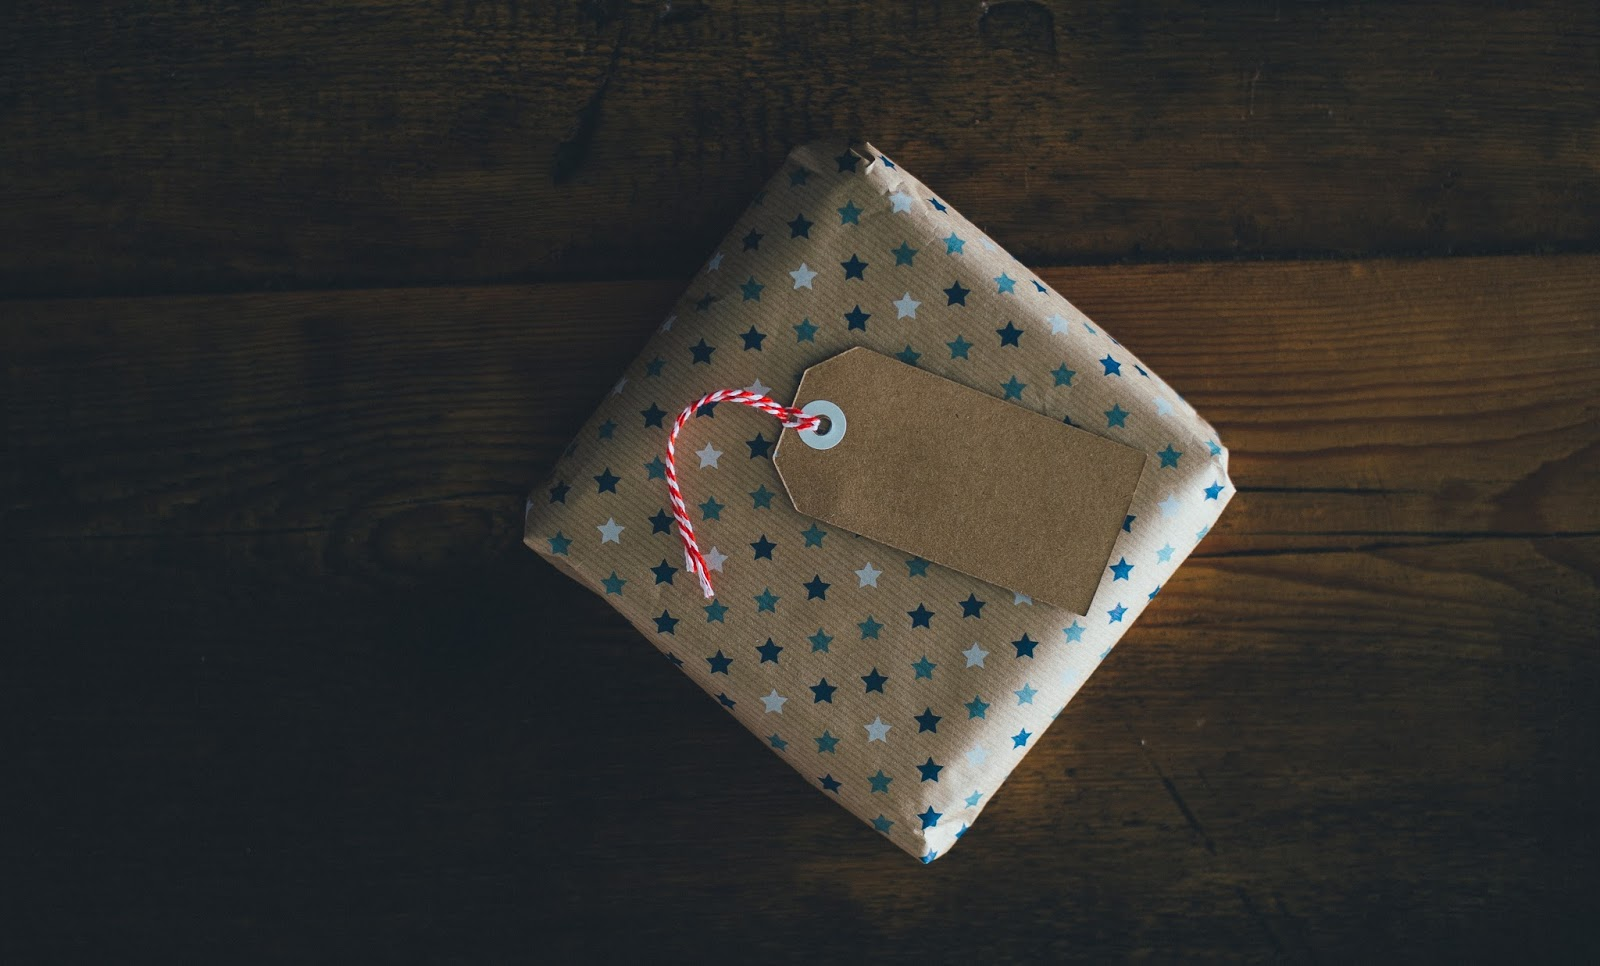 Small wrapped Christmas present